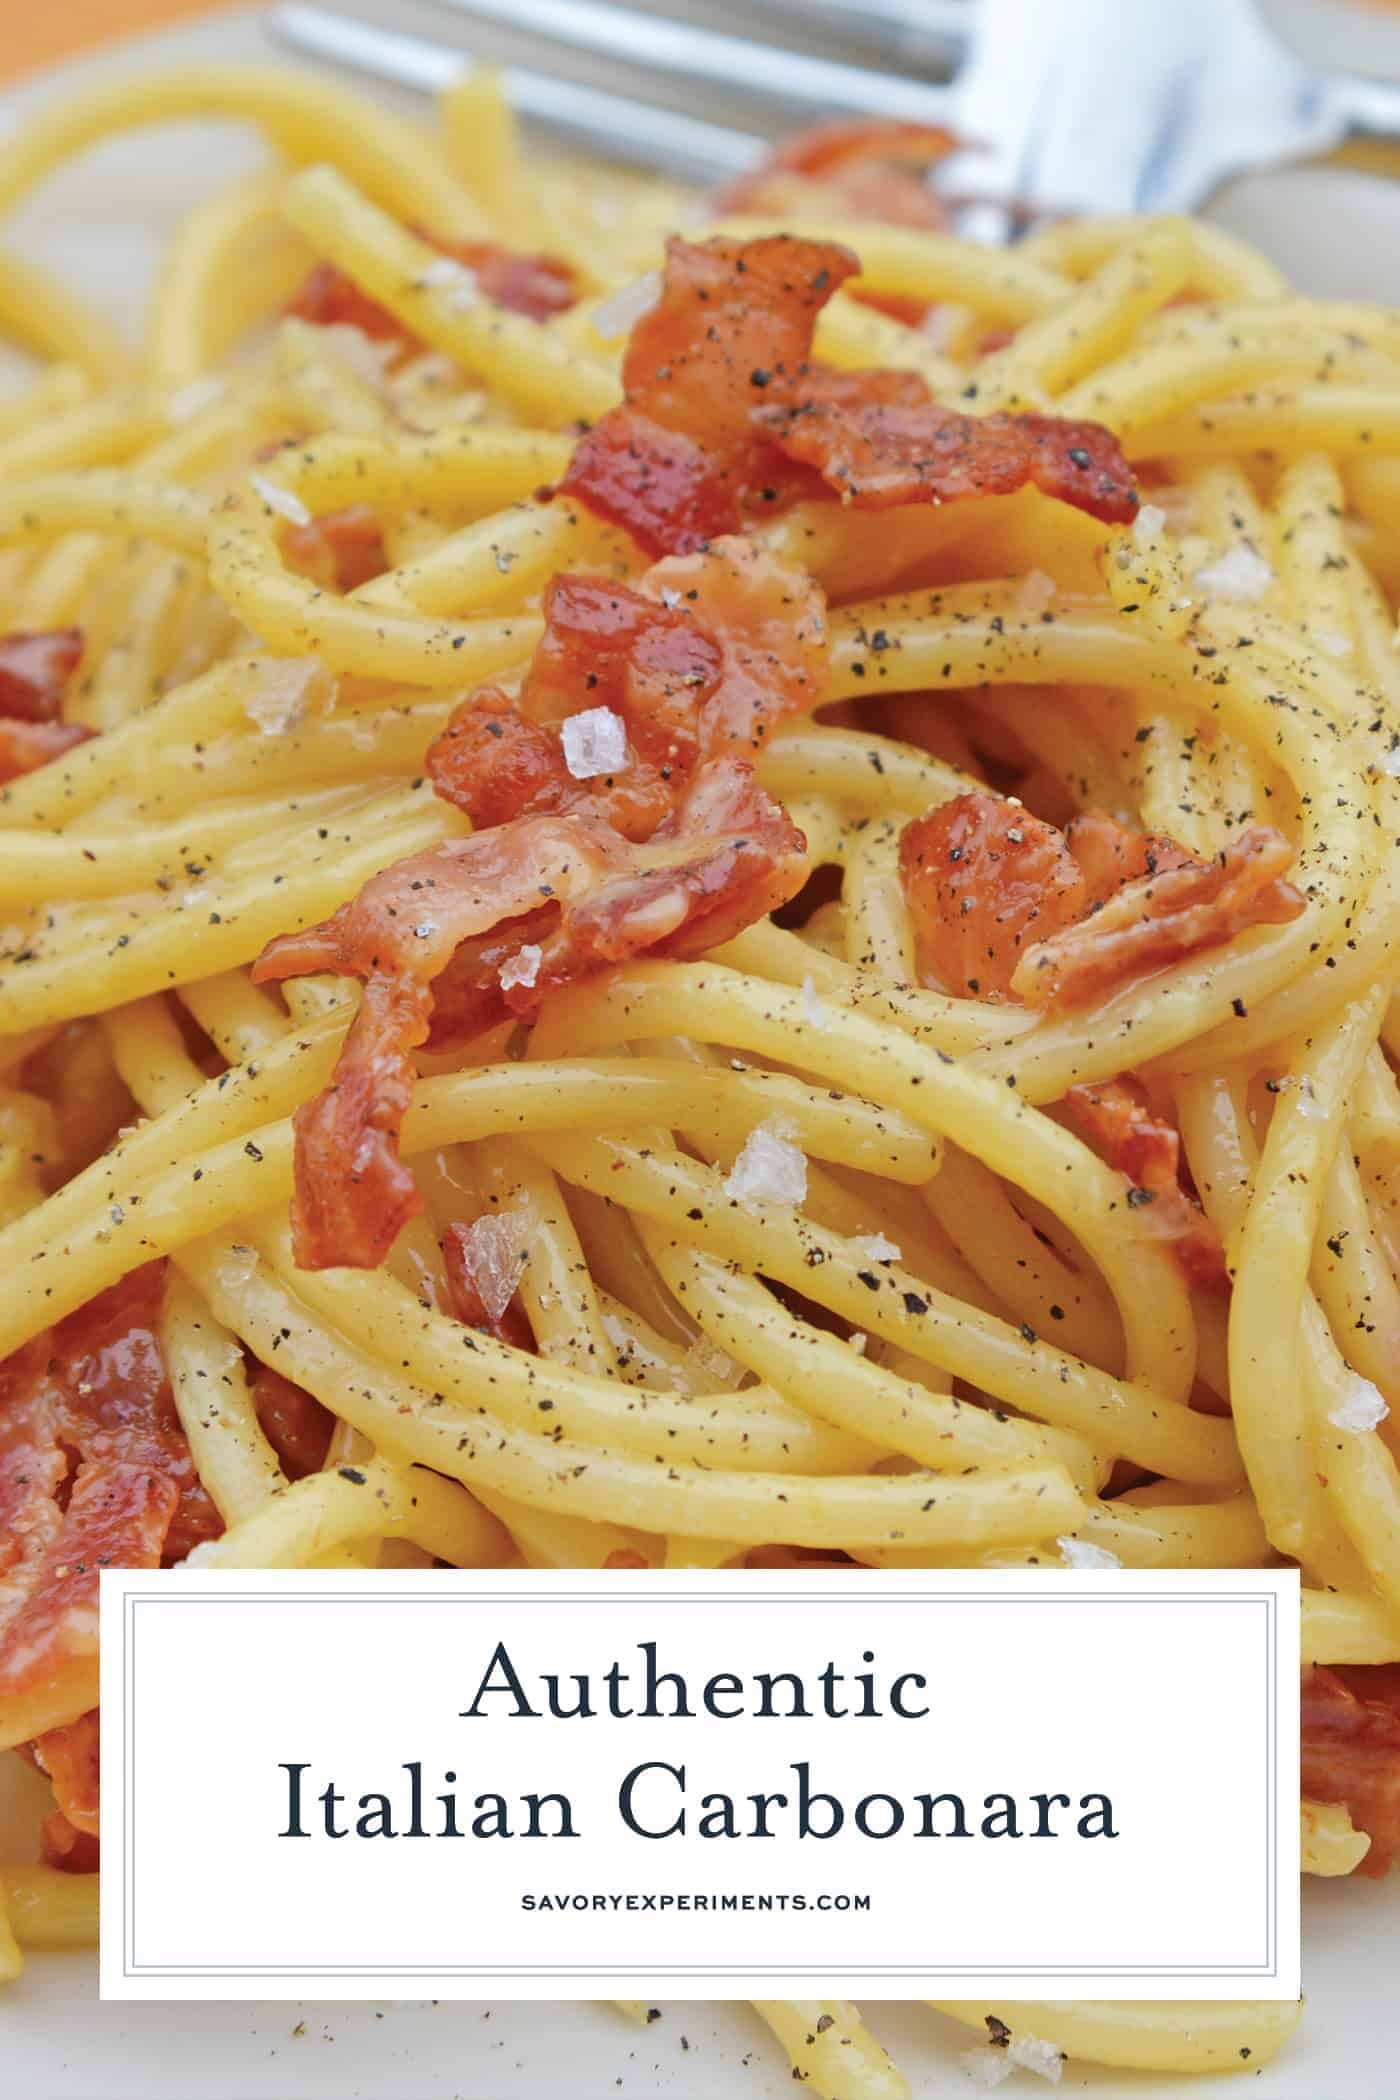 Authentic Carbonara is an easy Italian pasta recipe using eggs, cheese and bacon. This is an easy carbonara recipe that any home cook can feel confident in making! #easycarbonara #spaghetticarbonara #authenticcarbonara www.savoryexperiments.com